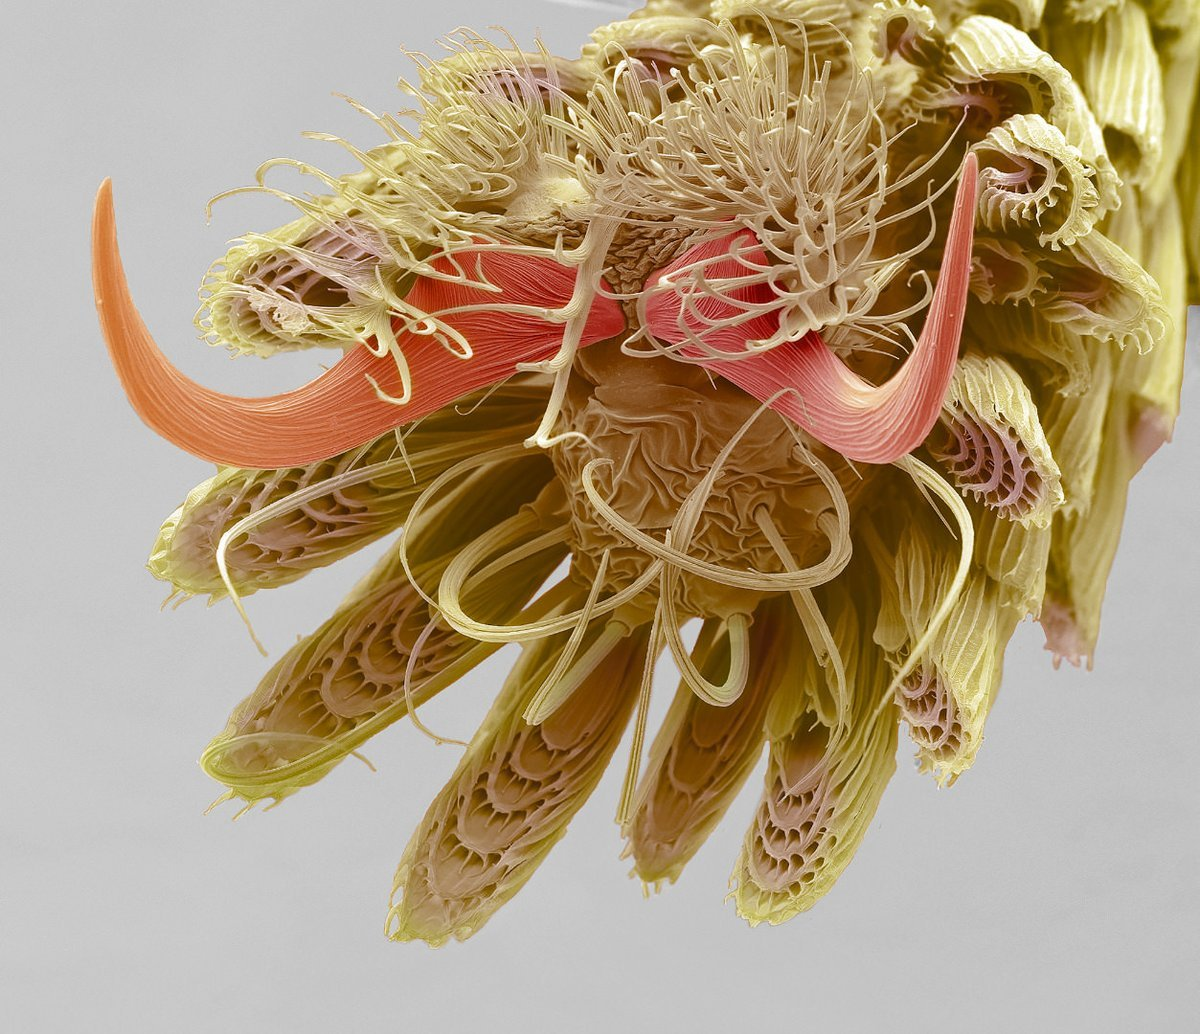 A mosquito's foot